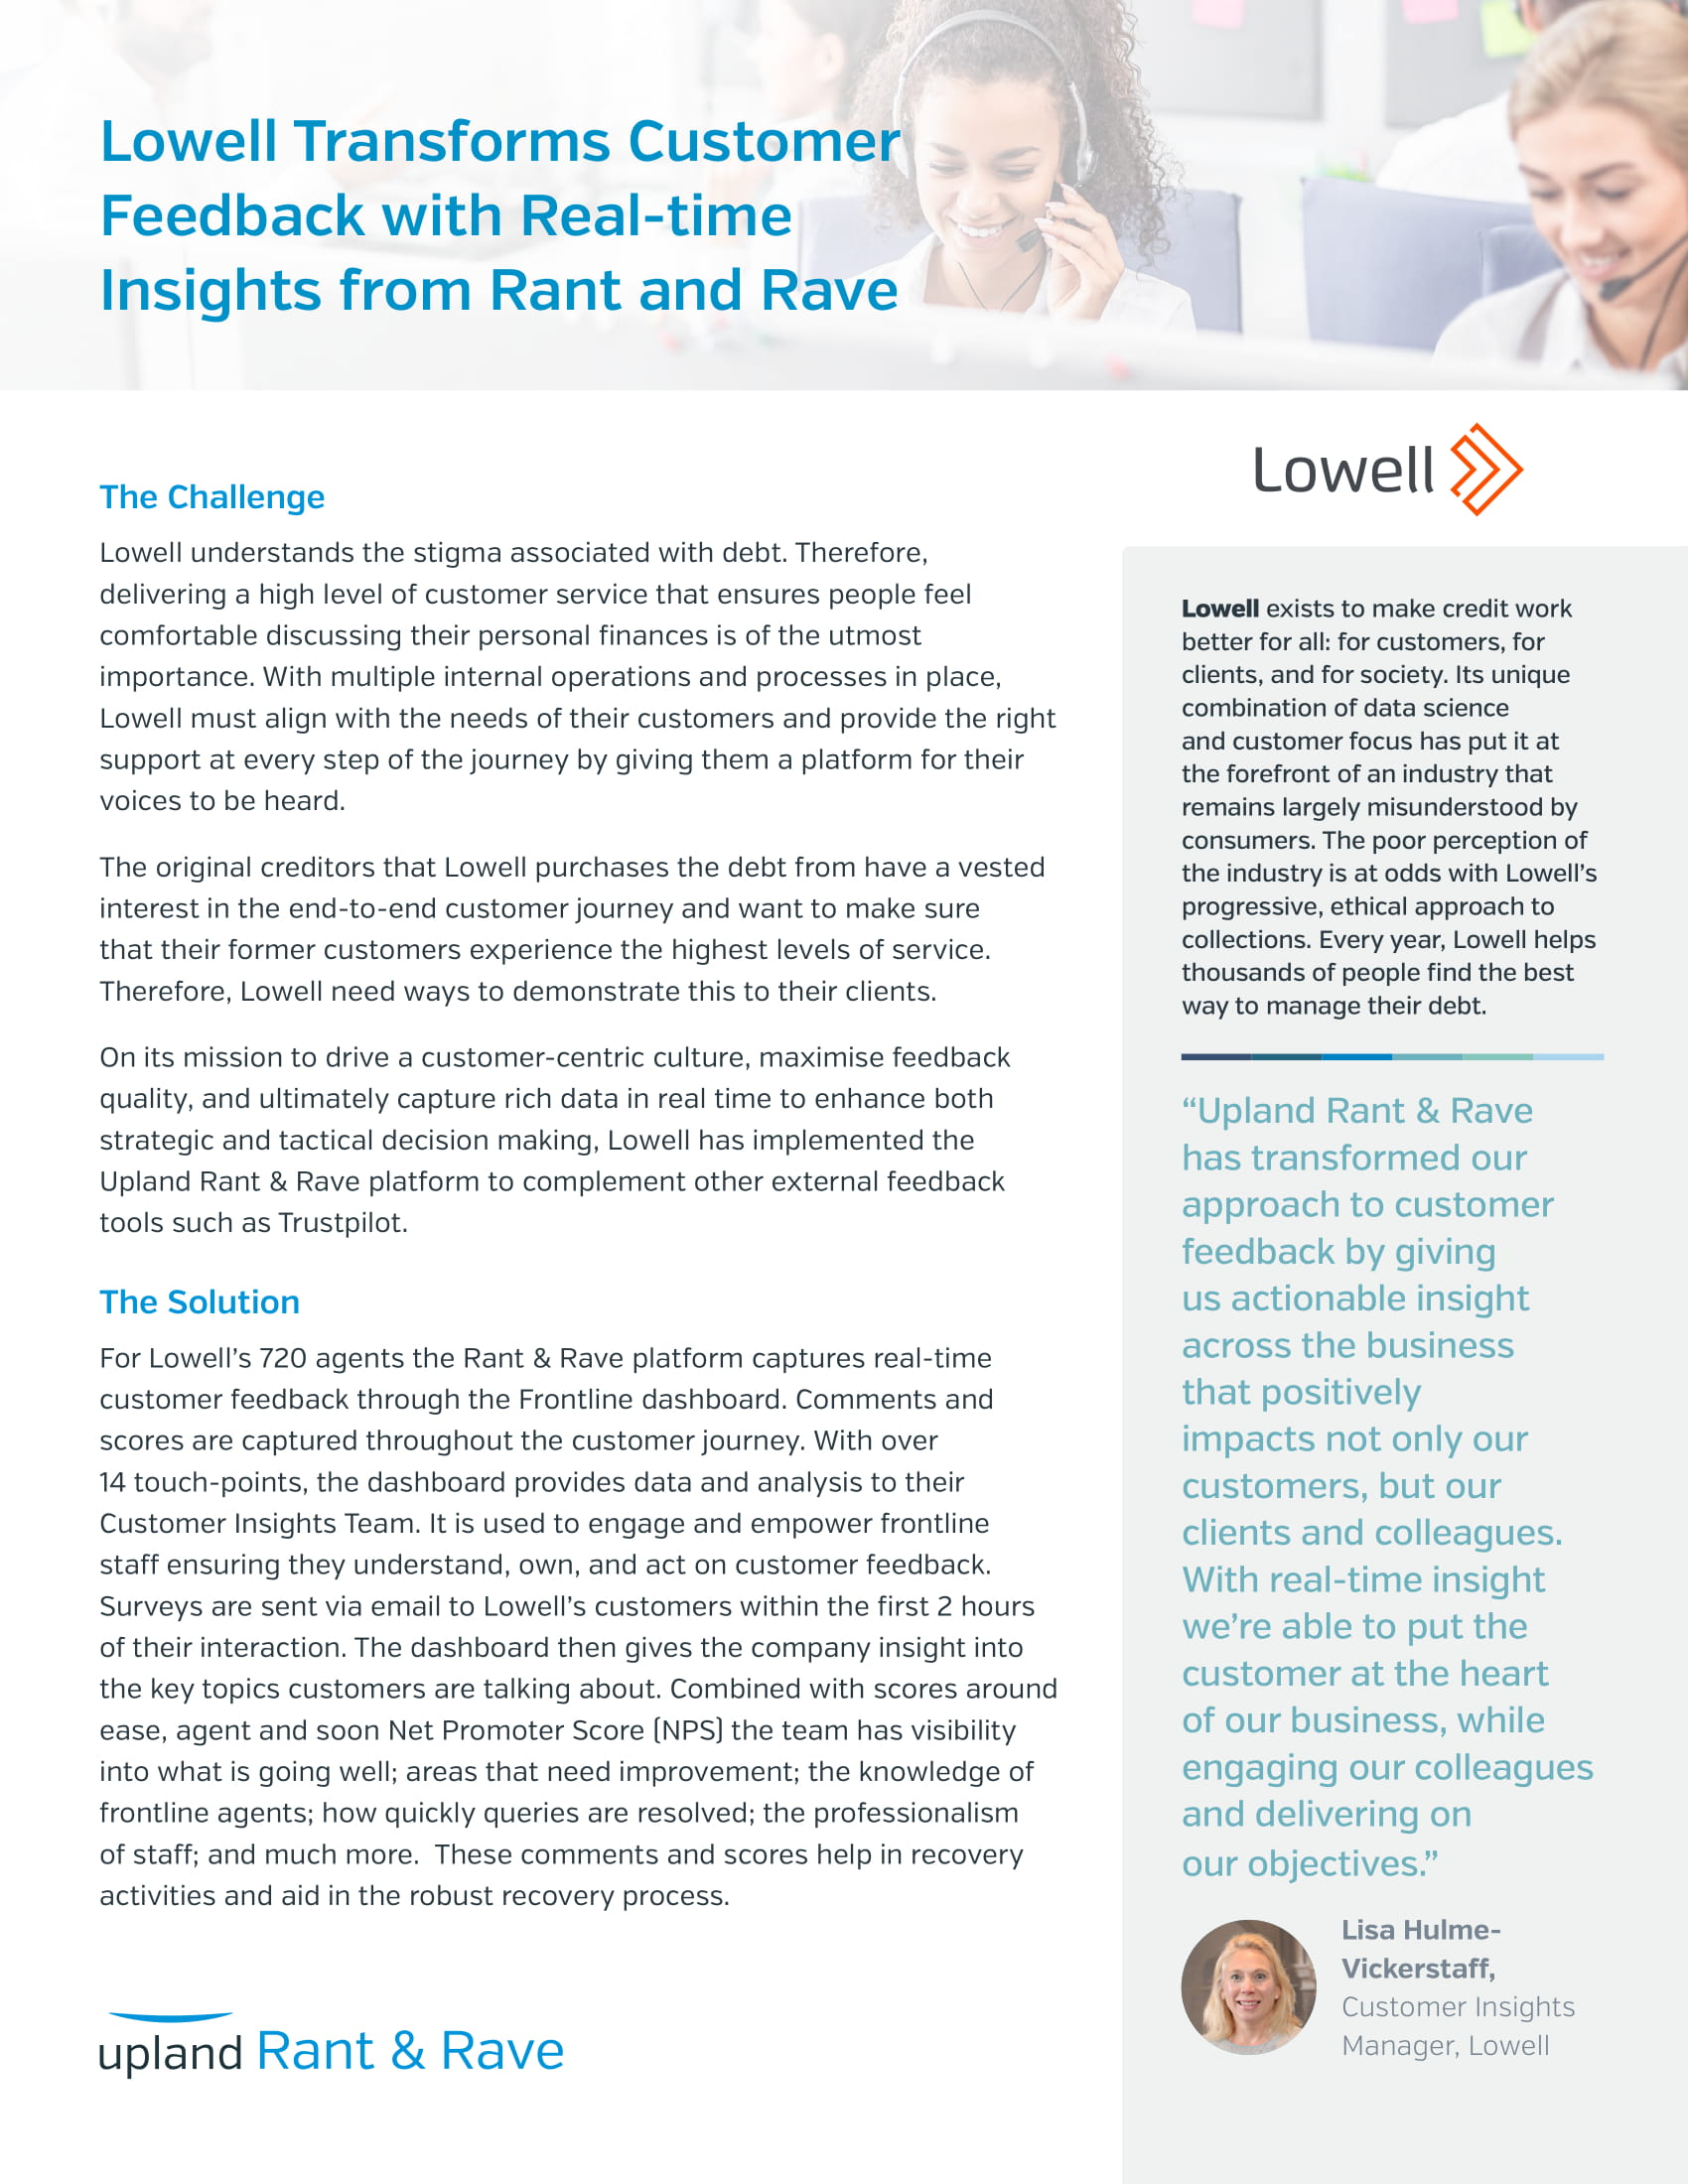 Rant and Rave Lowell Case Study-1